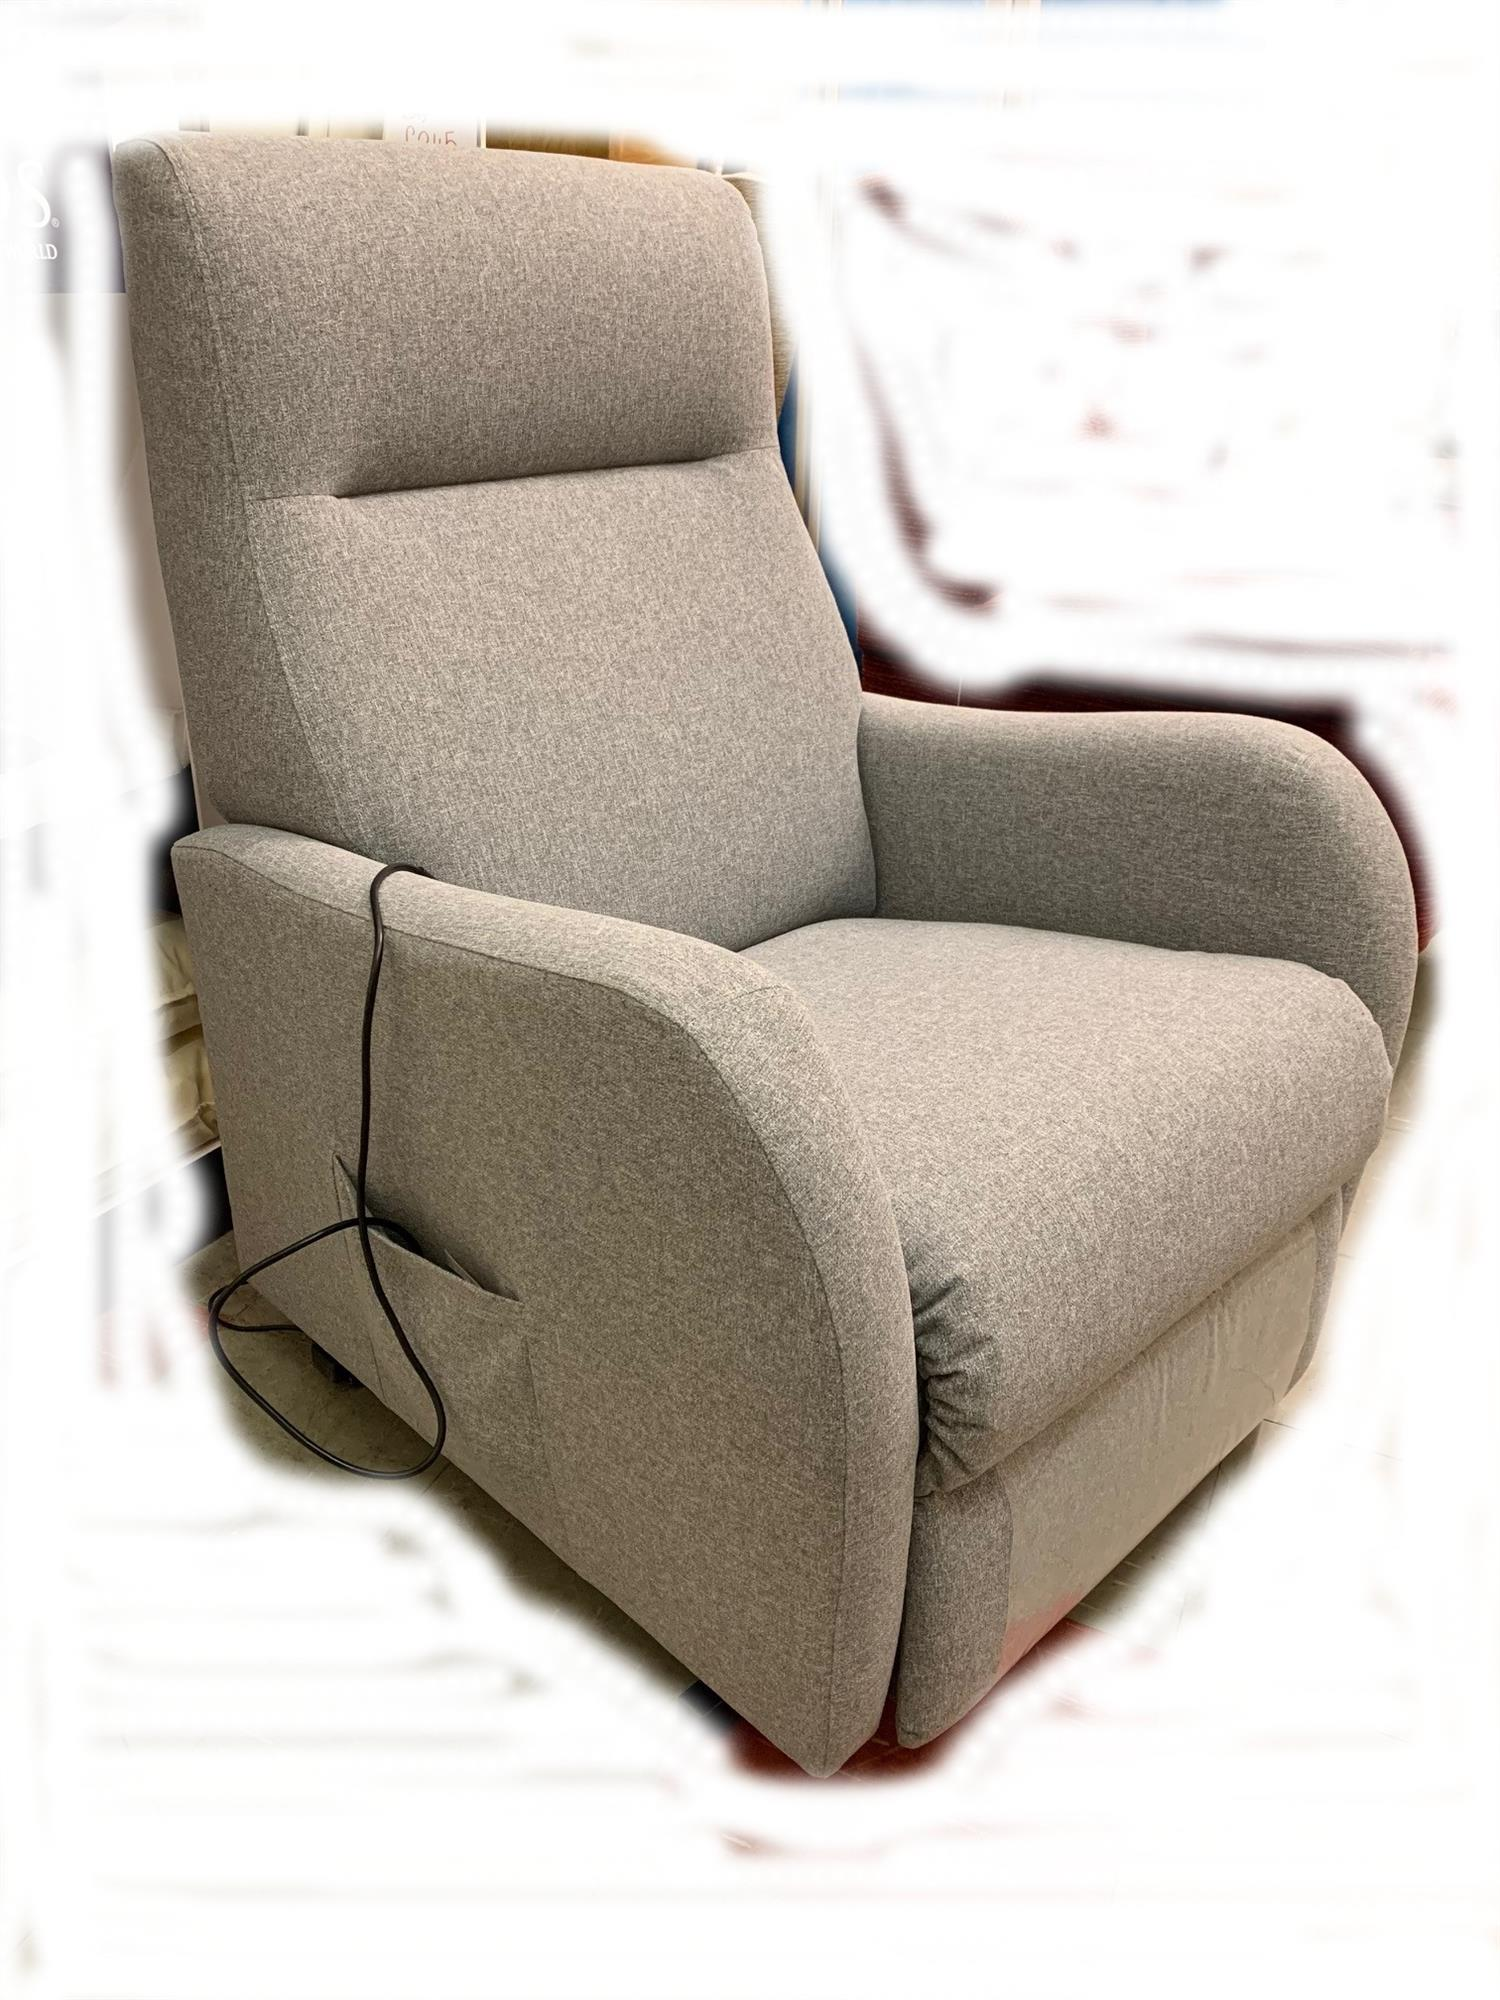 DOURO -  Lift & Rise Recliner Chair by Tajoma